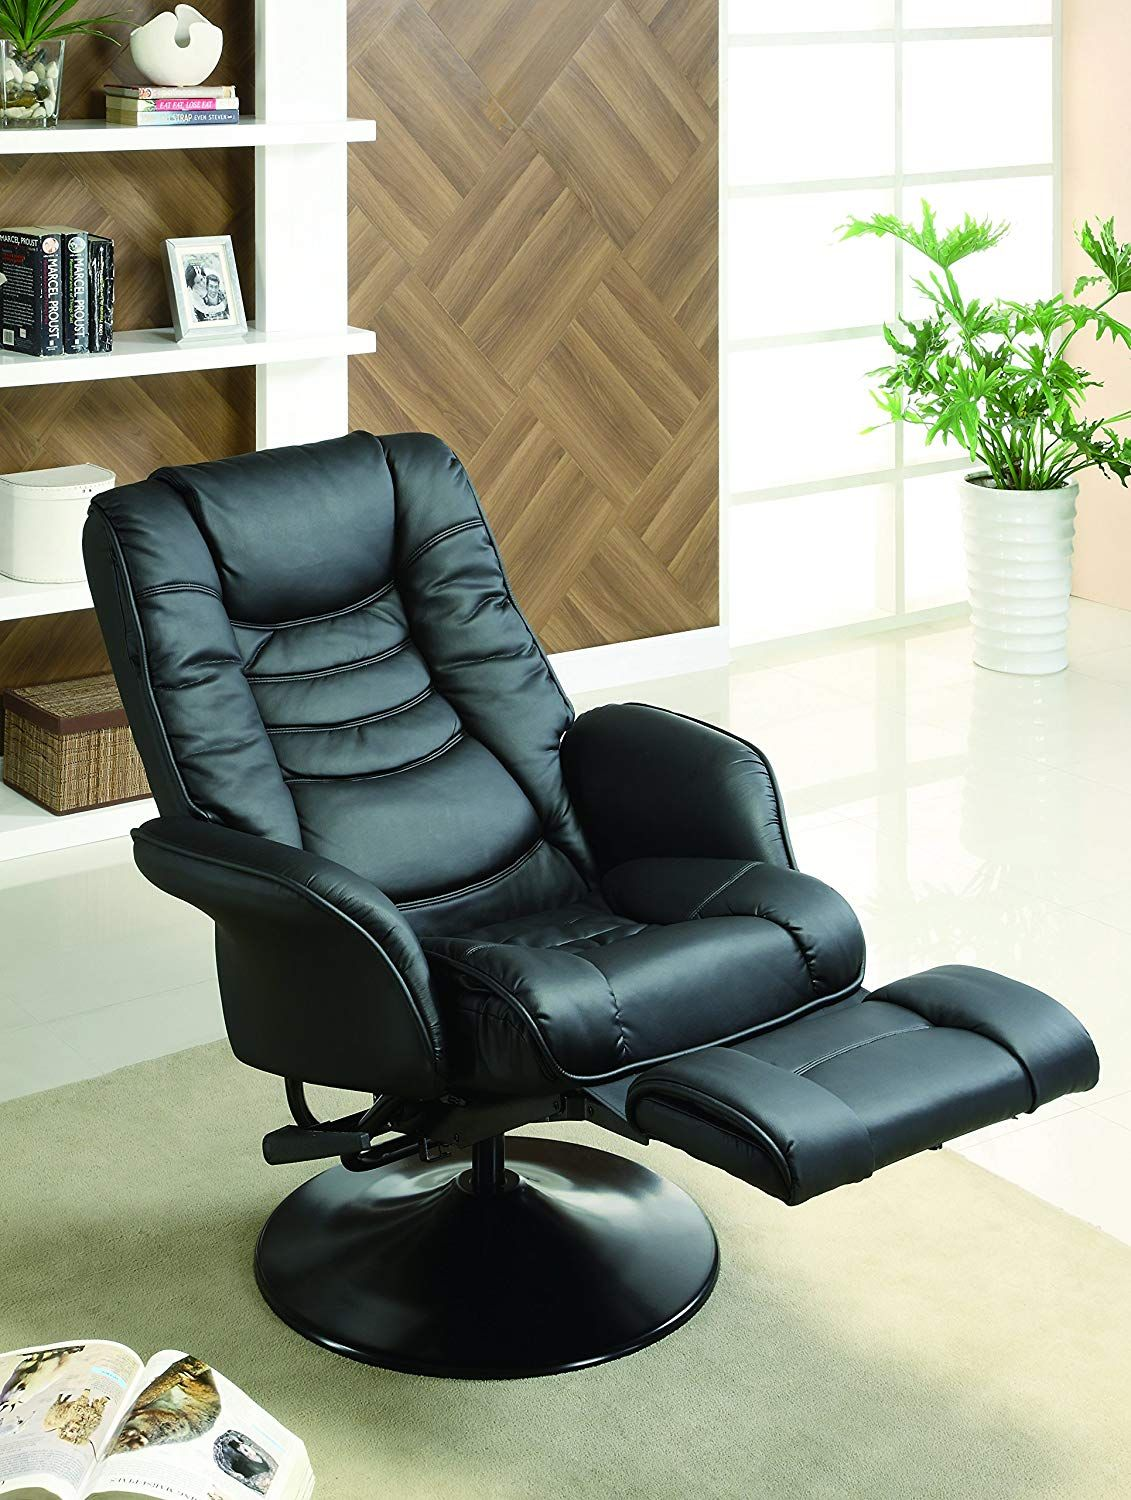 Leatherette Swivel Recliner Black Swivel recliner chairs